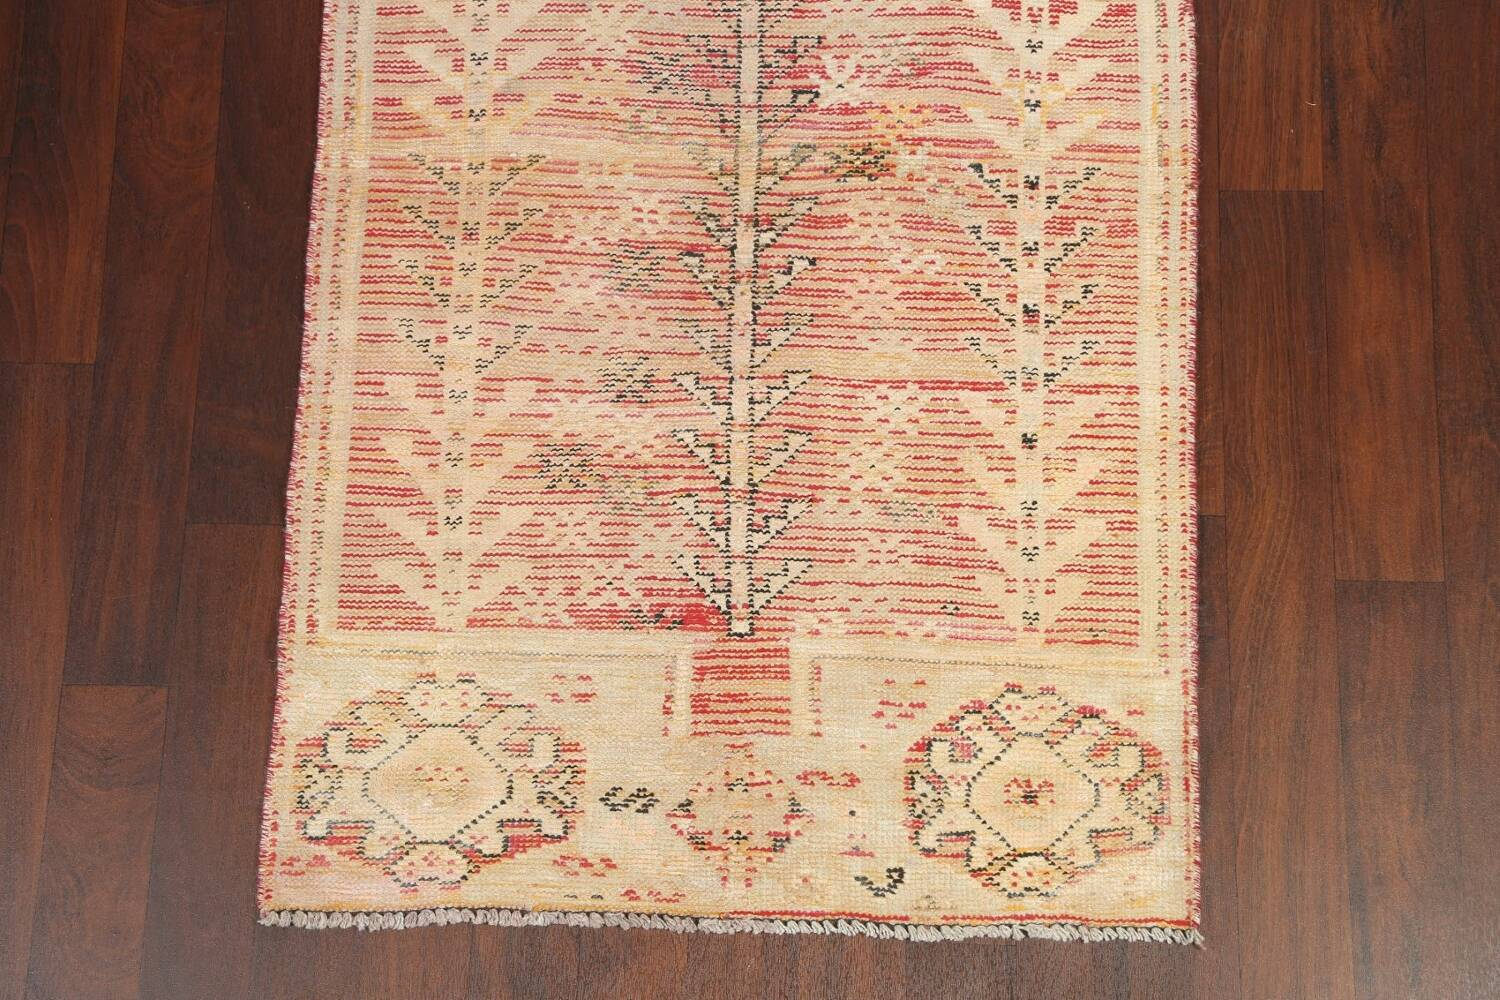 Antique Distressed Malayer Persian Runner Rug 4x12 image 5